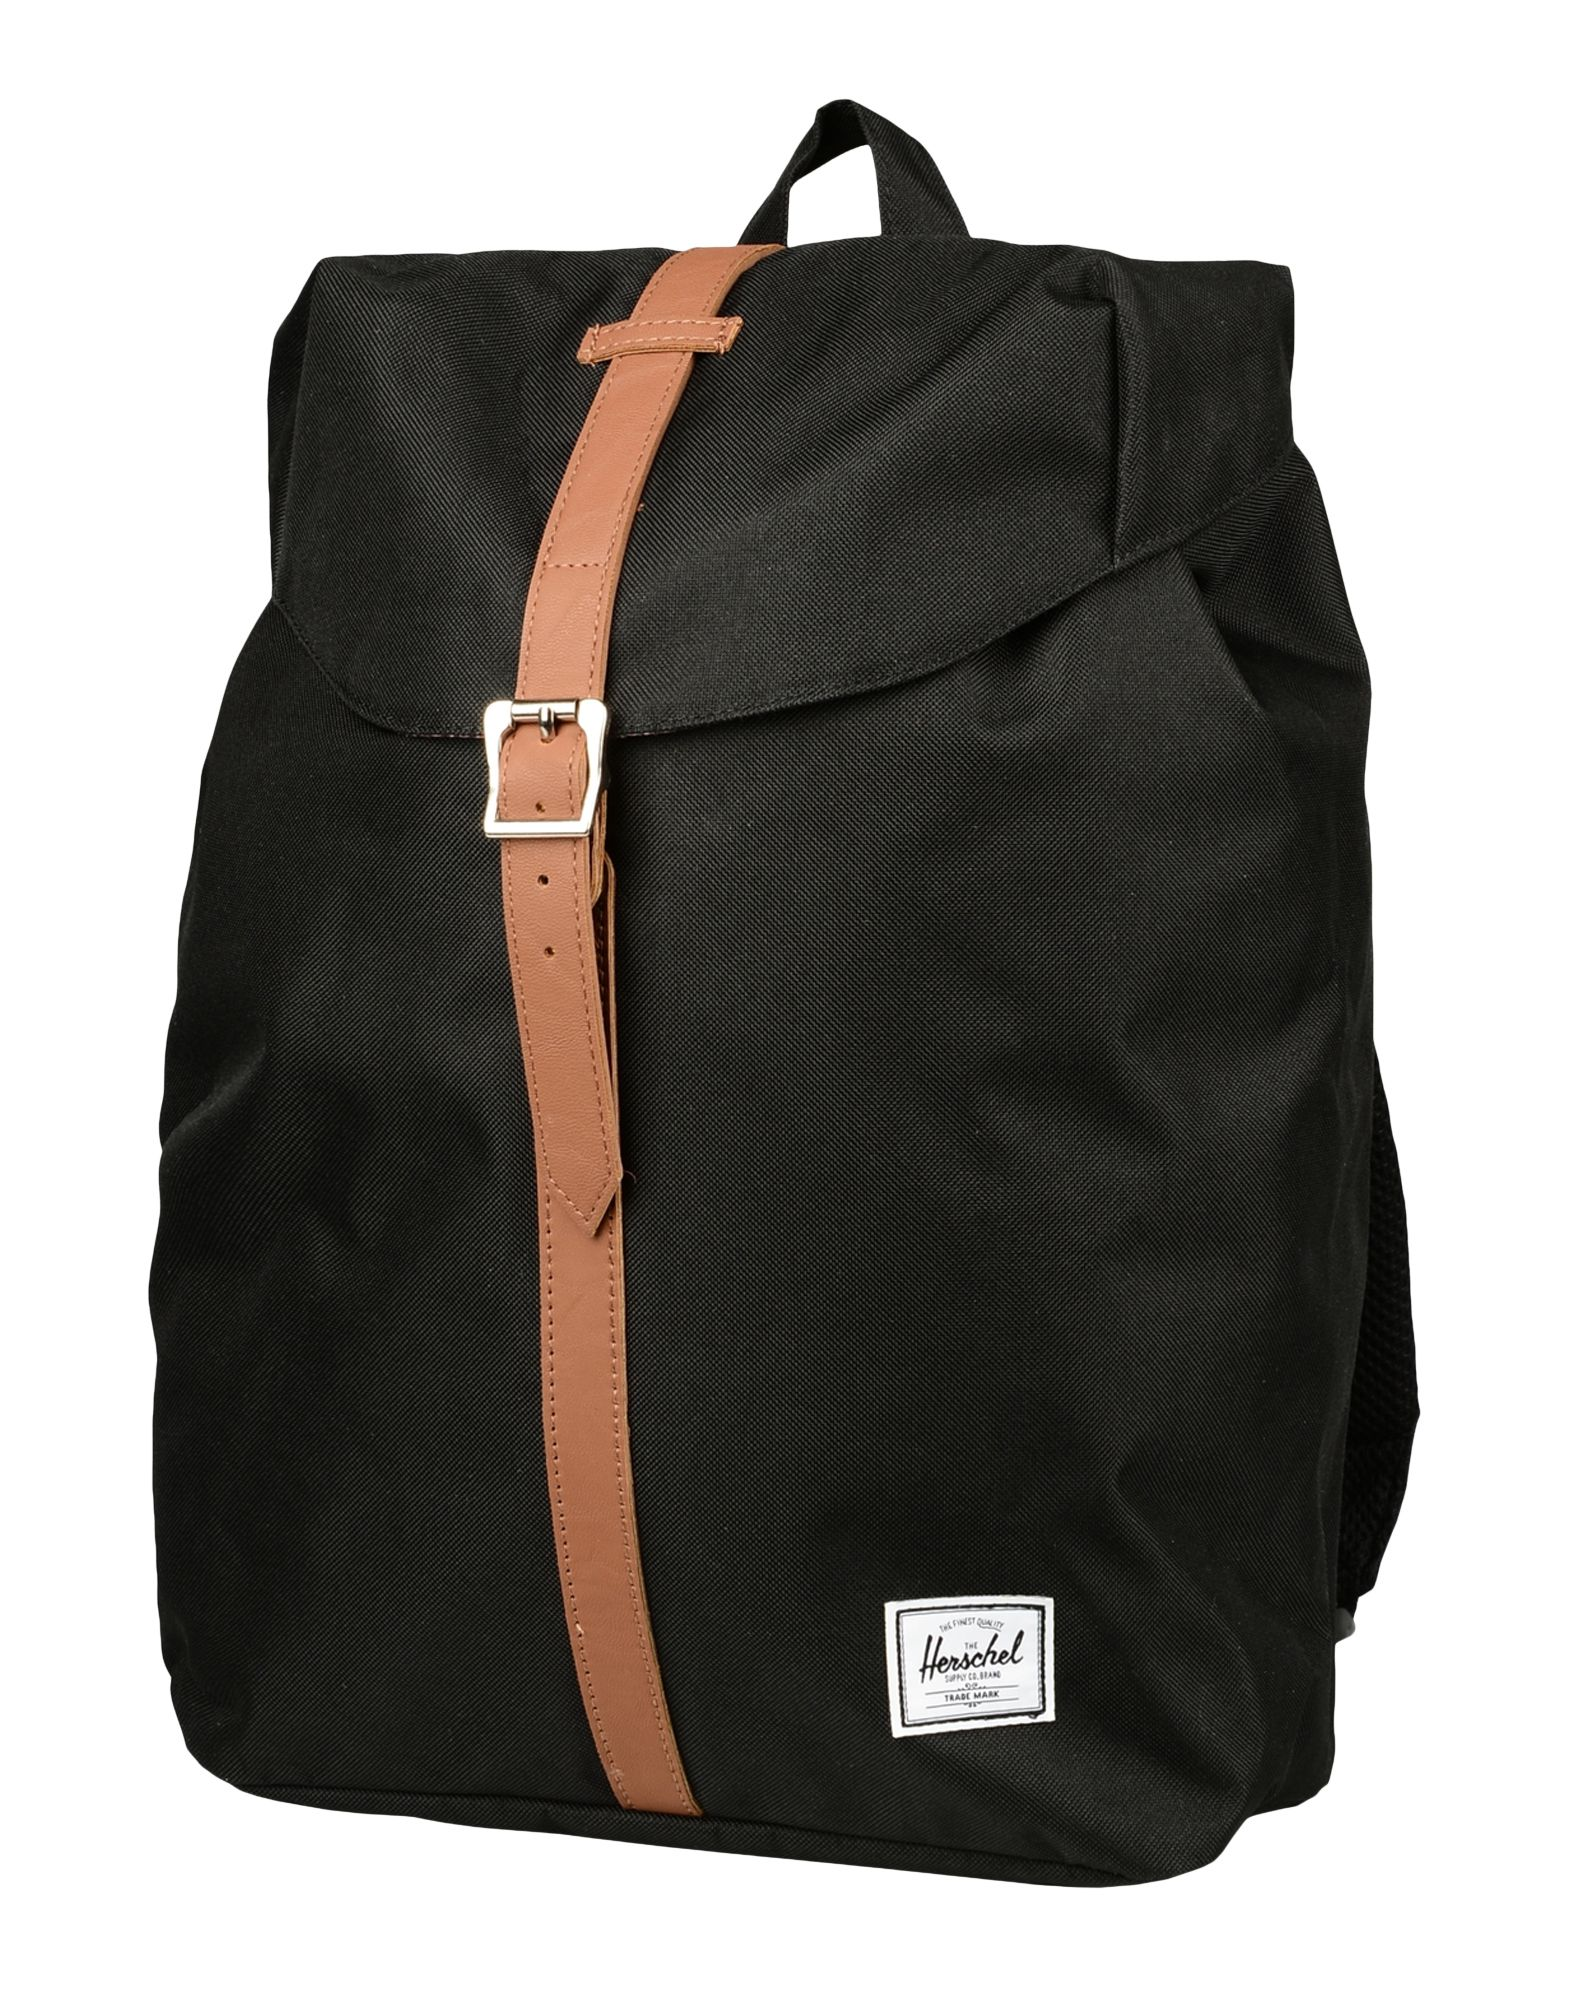 The Herschel Supply Co. Brand Backpacks & Fanny Packs